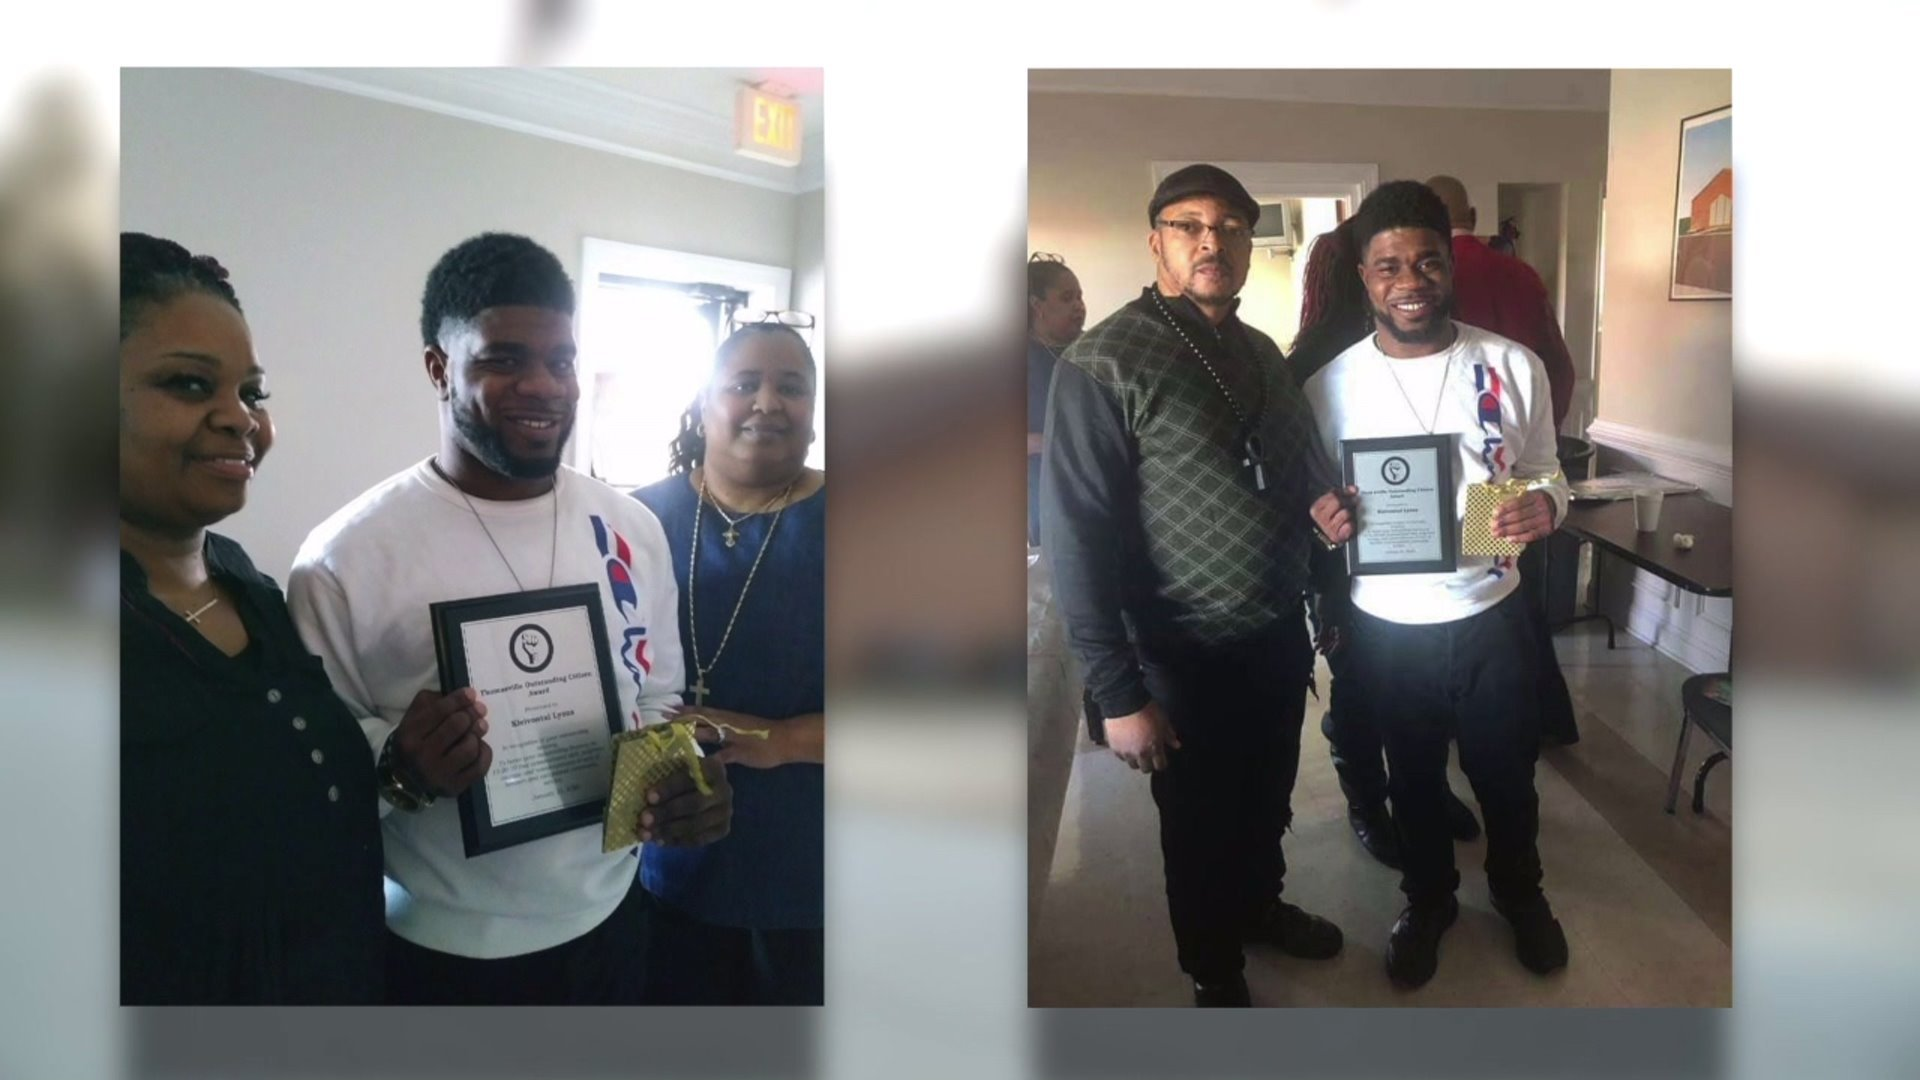 Kienivontai Lyons awarded for defending his family when an armed man broke into his home.